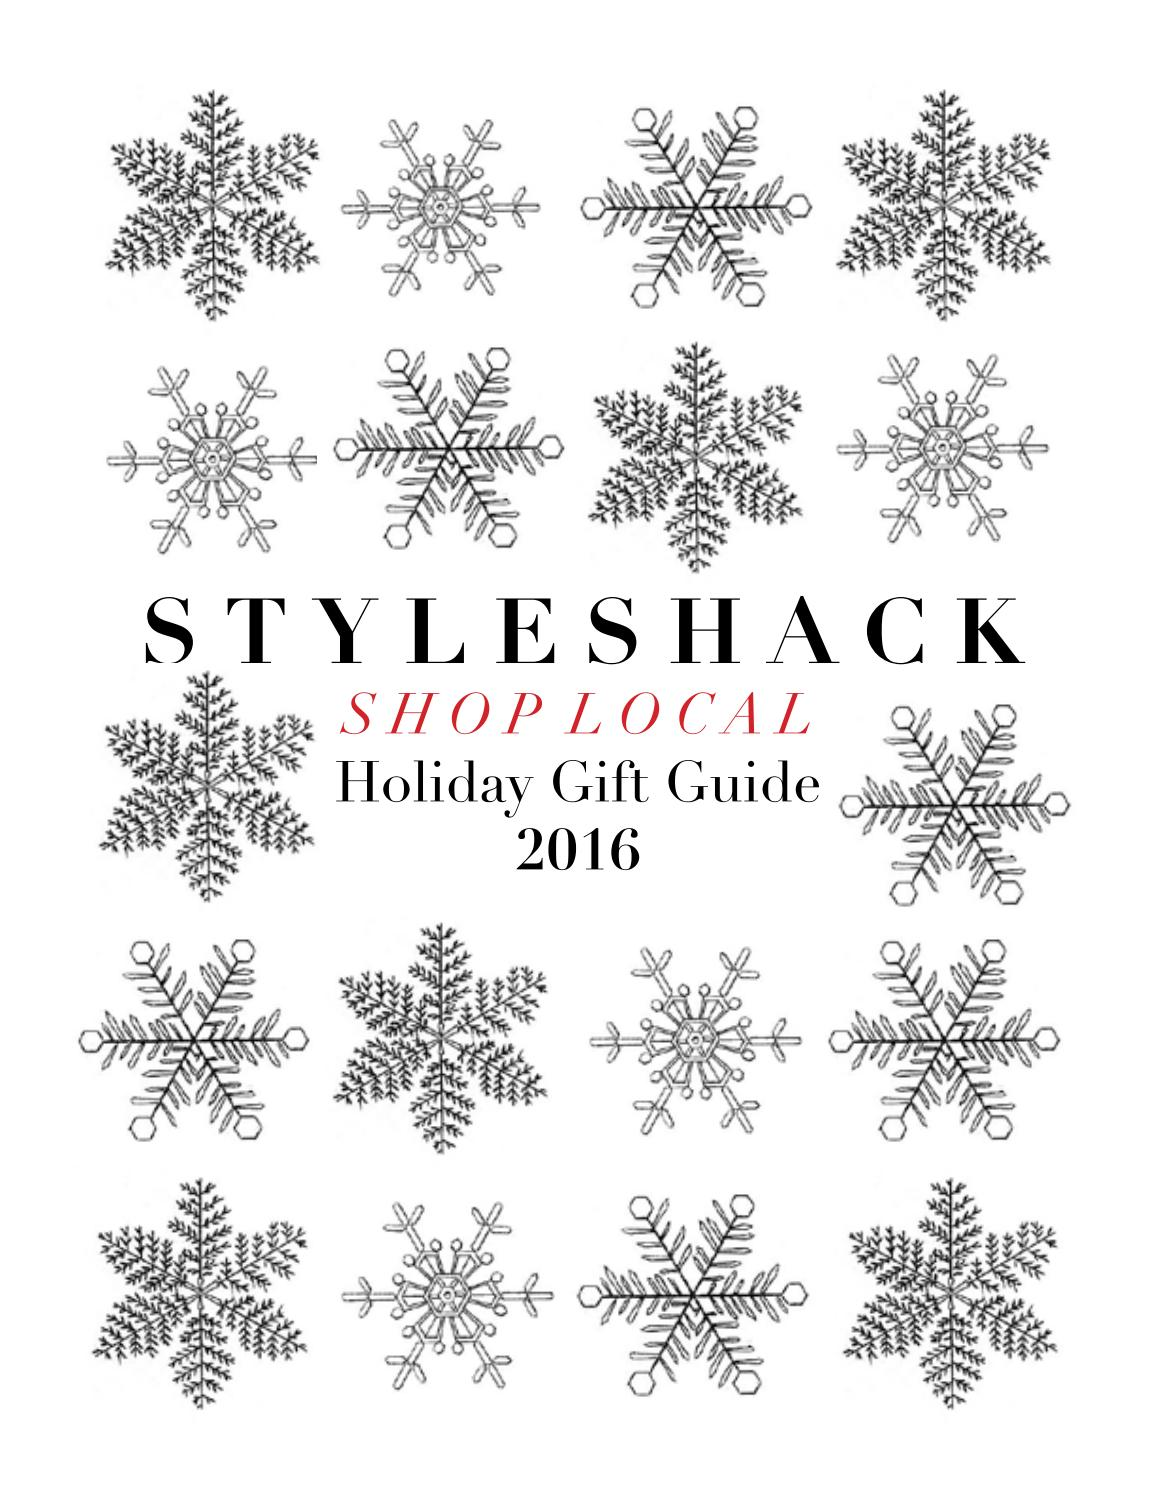 Styleshack Shop Local Holiday Gift Guide 2016 by